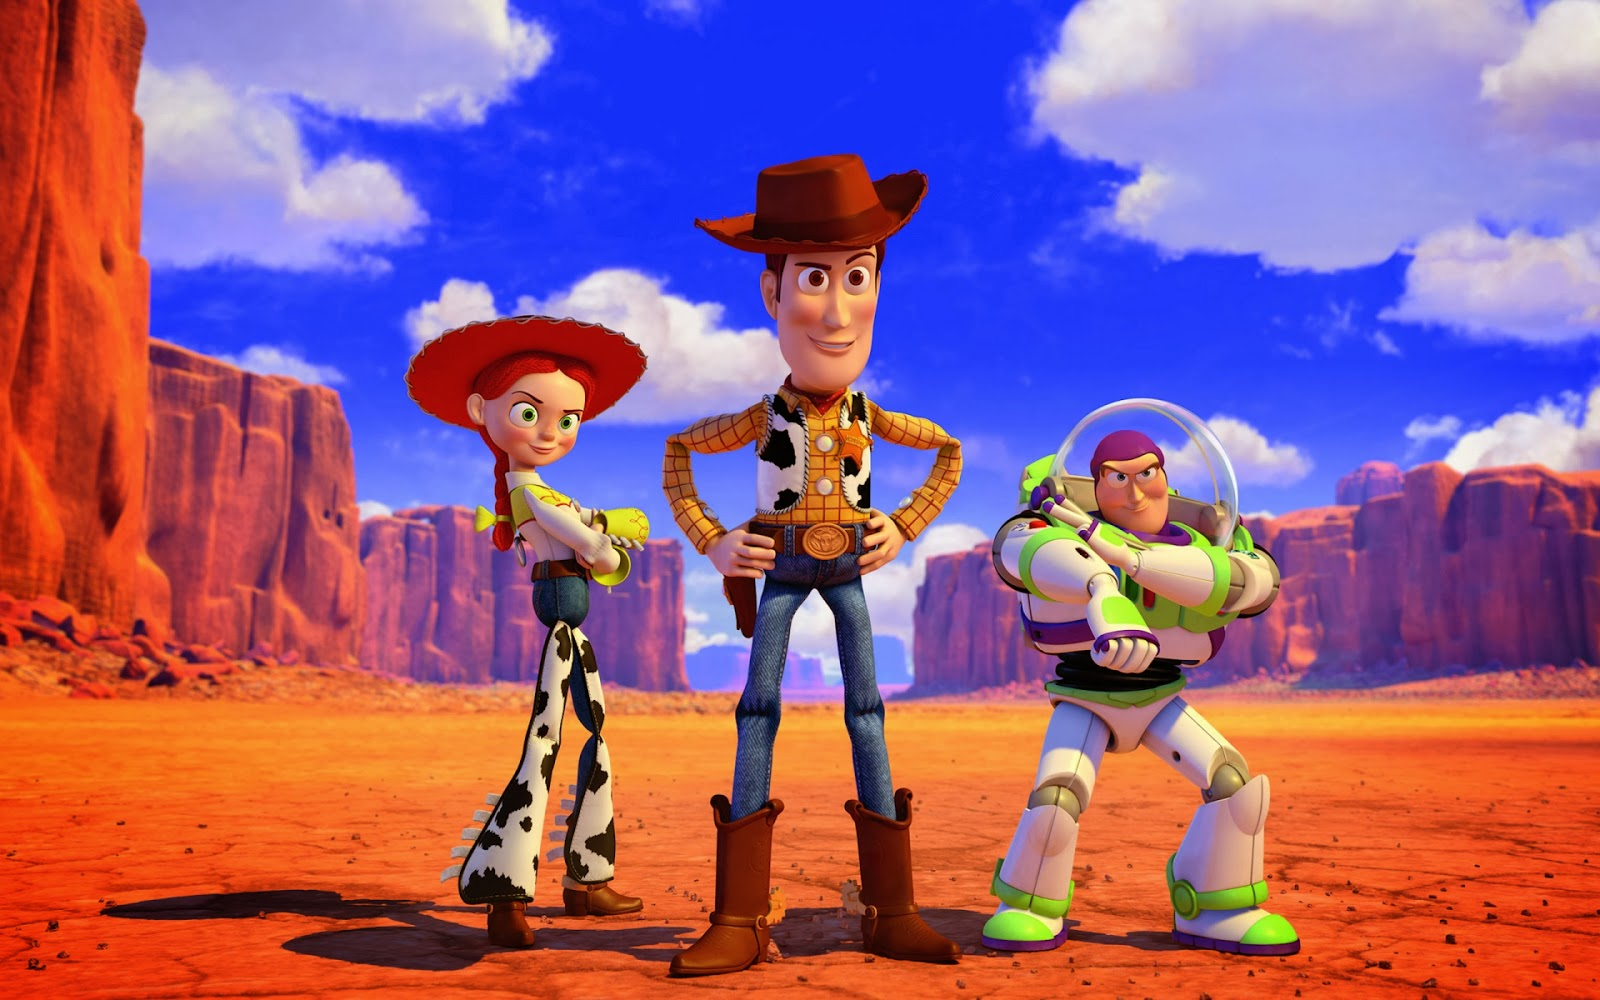 Disney Character Wallpaper Toy Story 3 Woody Buzz Jessie 1600x1000 Download Hd Wallpaper Wallpapertip